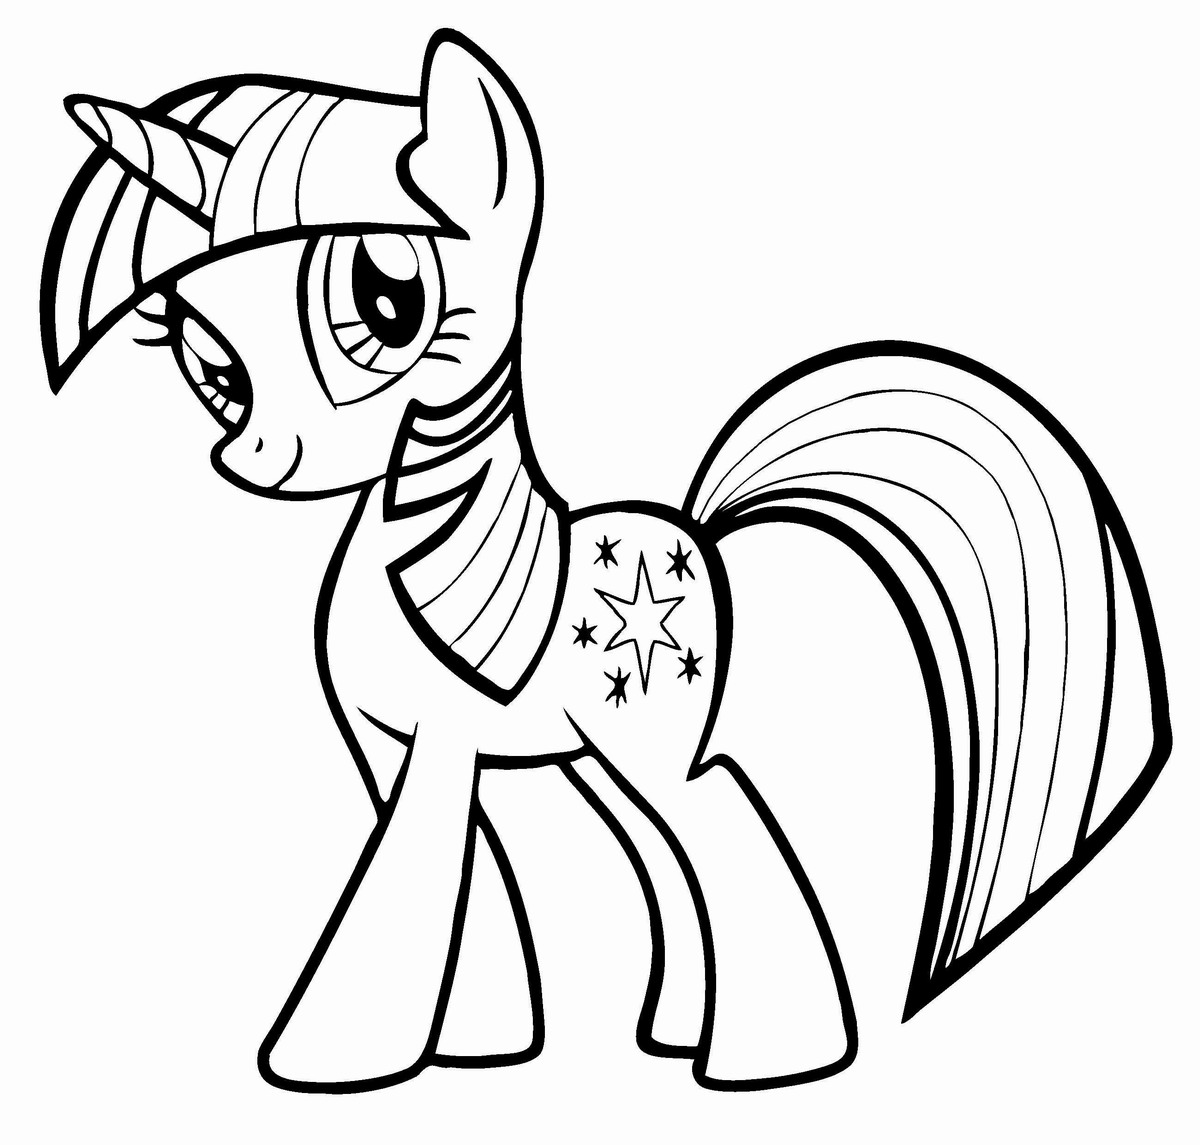 my lil pony coloring pages new cute my little pony coloring pages new coloring pages pony coloring my pages lil